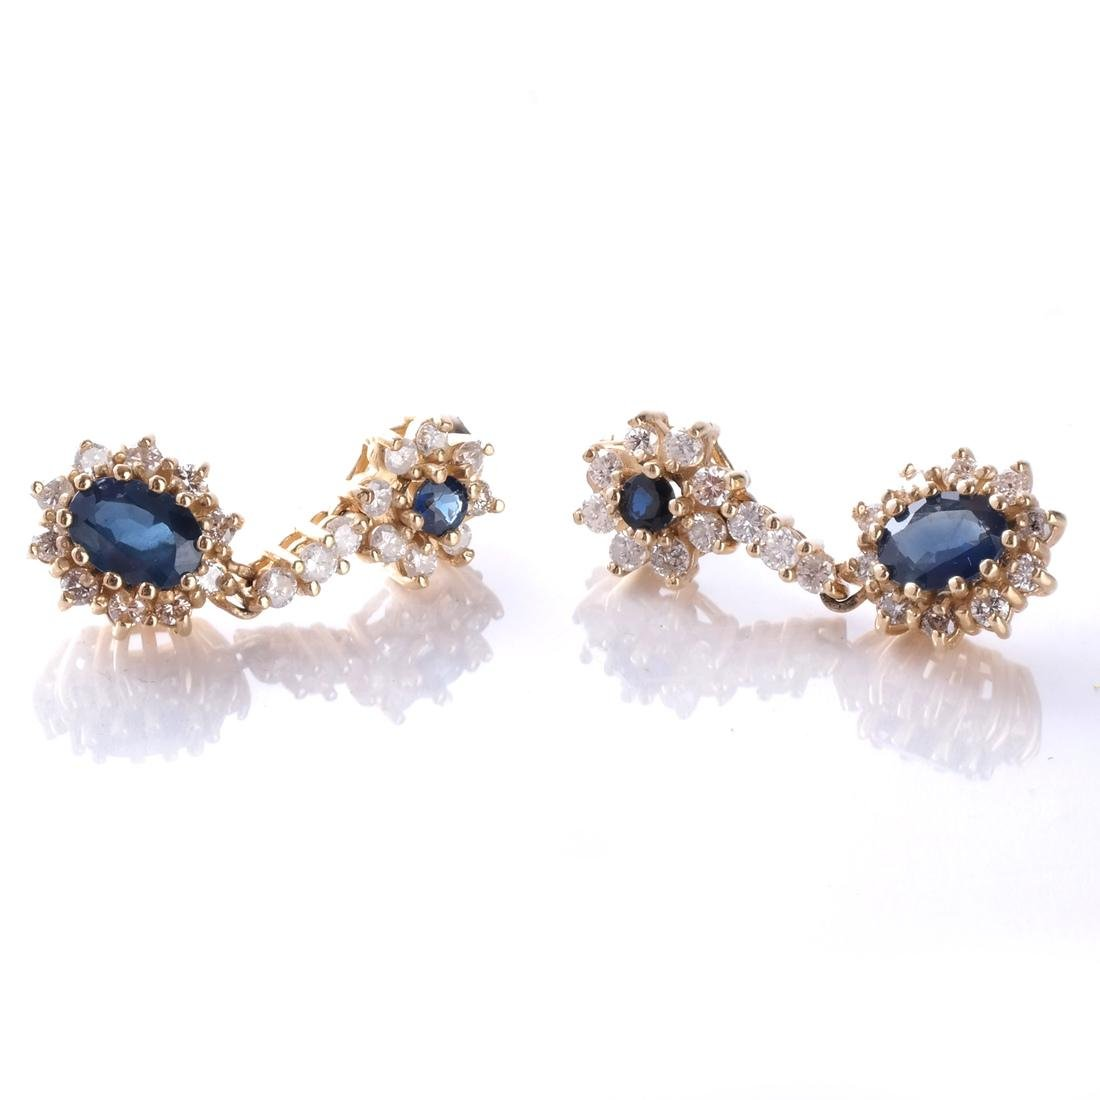 14k Sapphire and Diamond Earrings